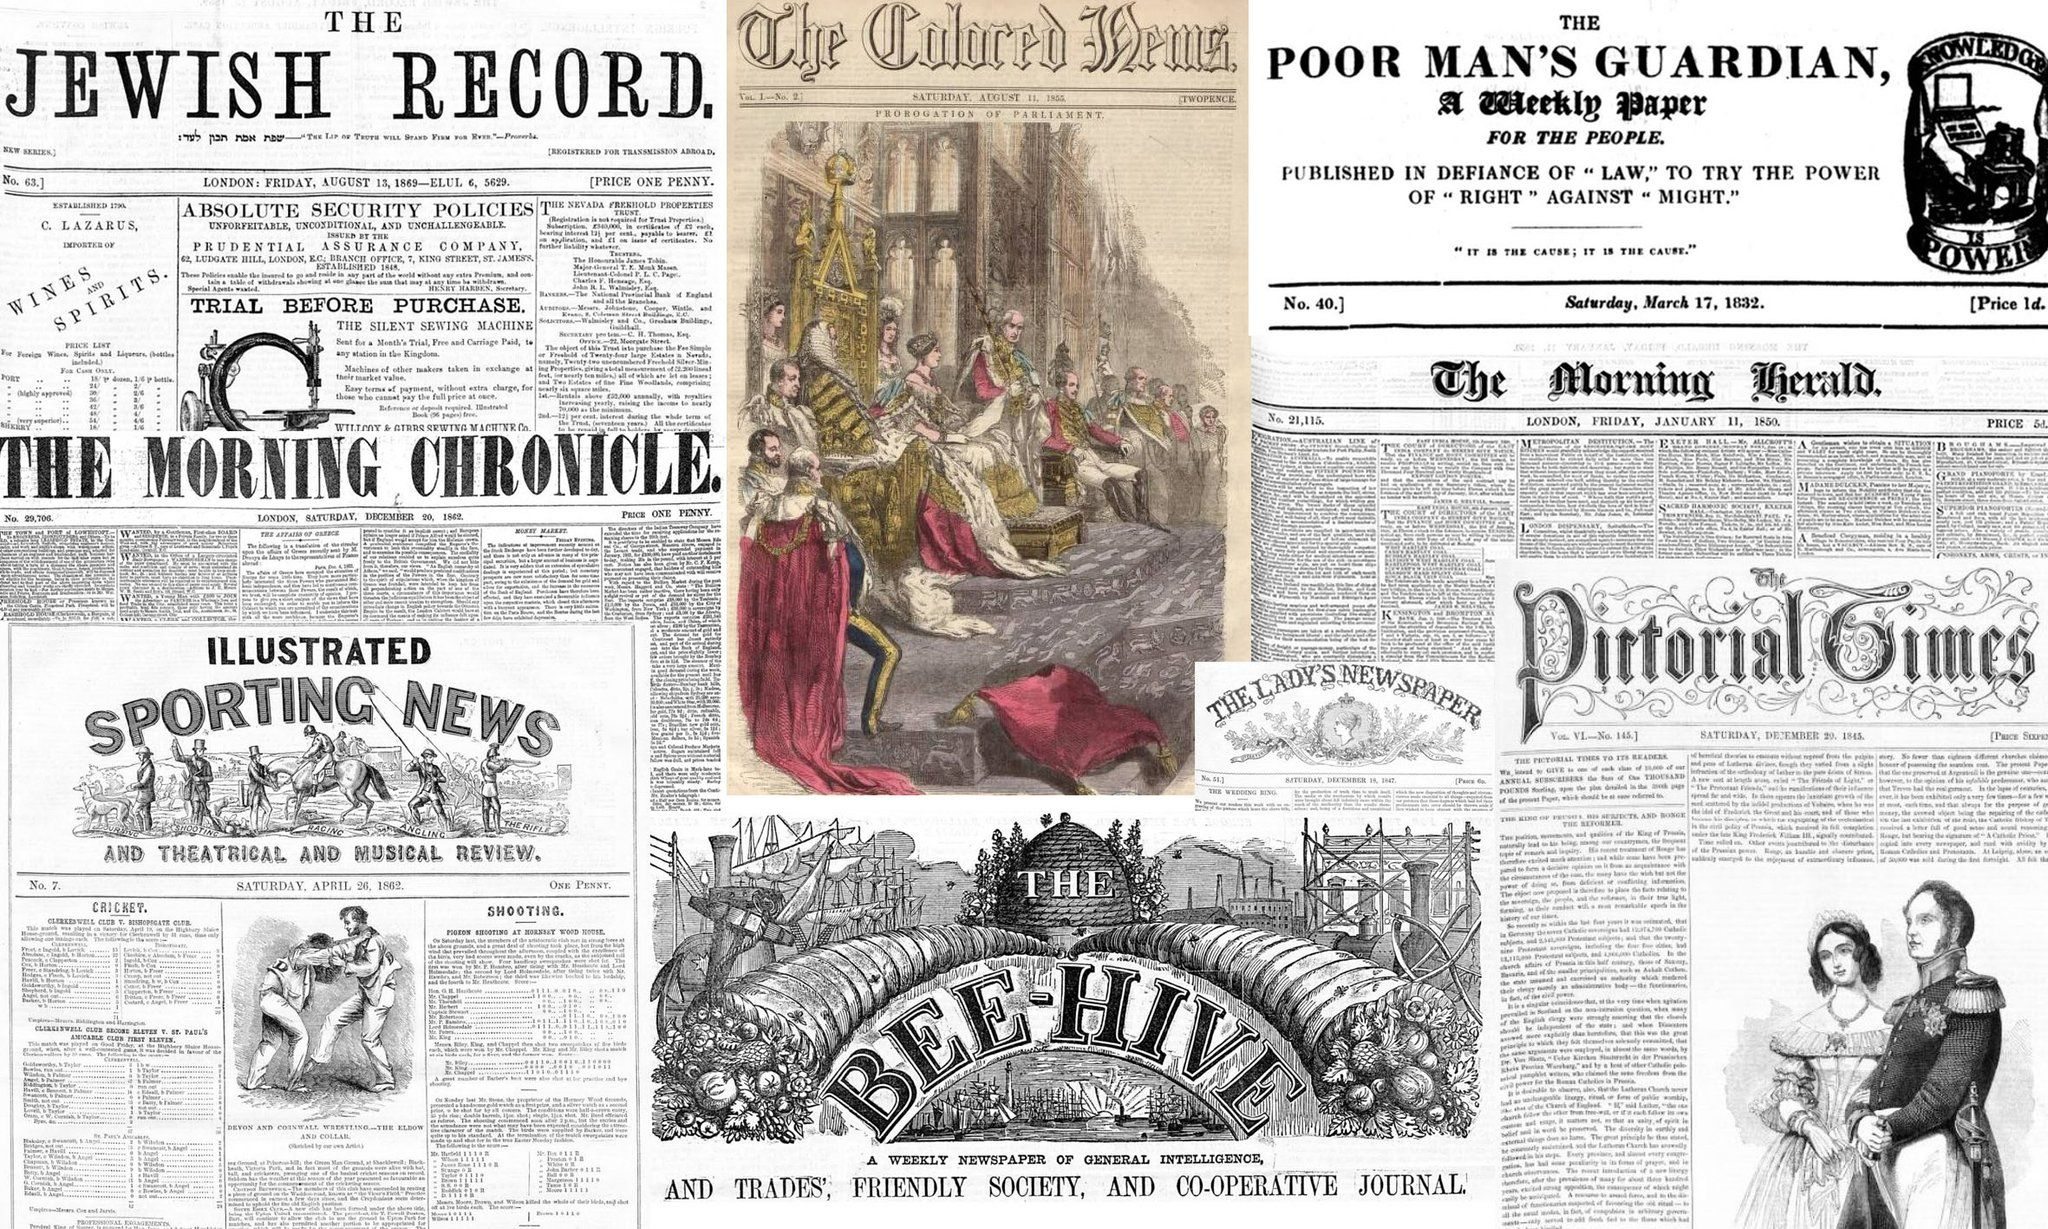 Explore Over One Million Historical Newspaper Pages for FREE